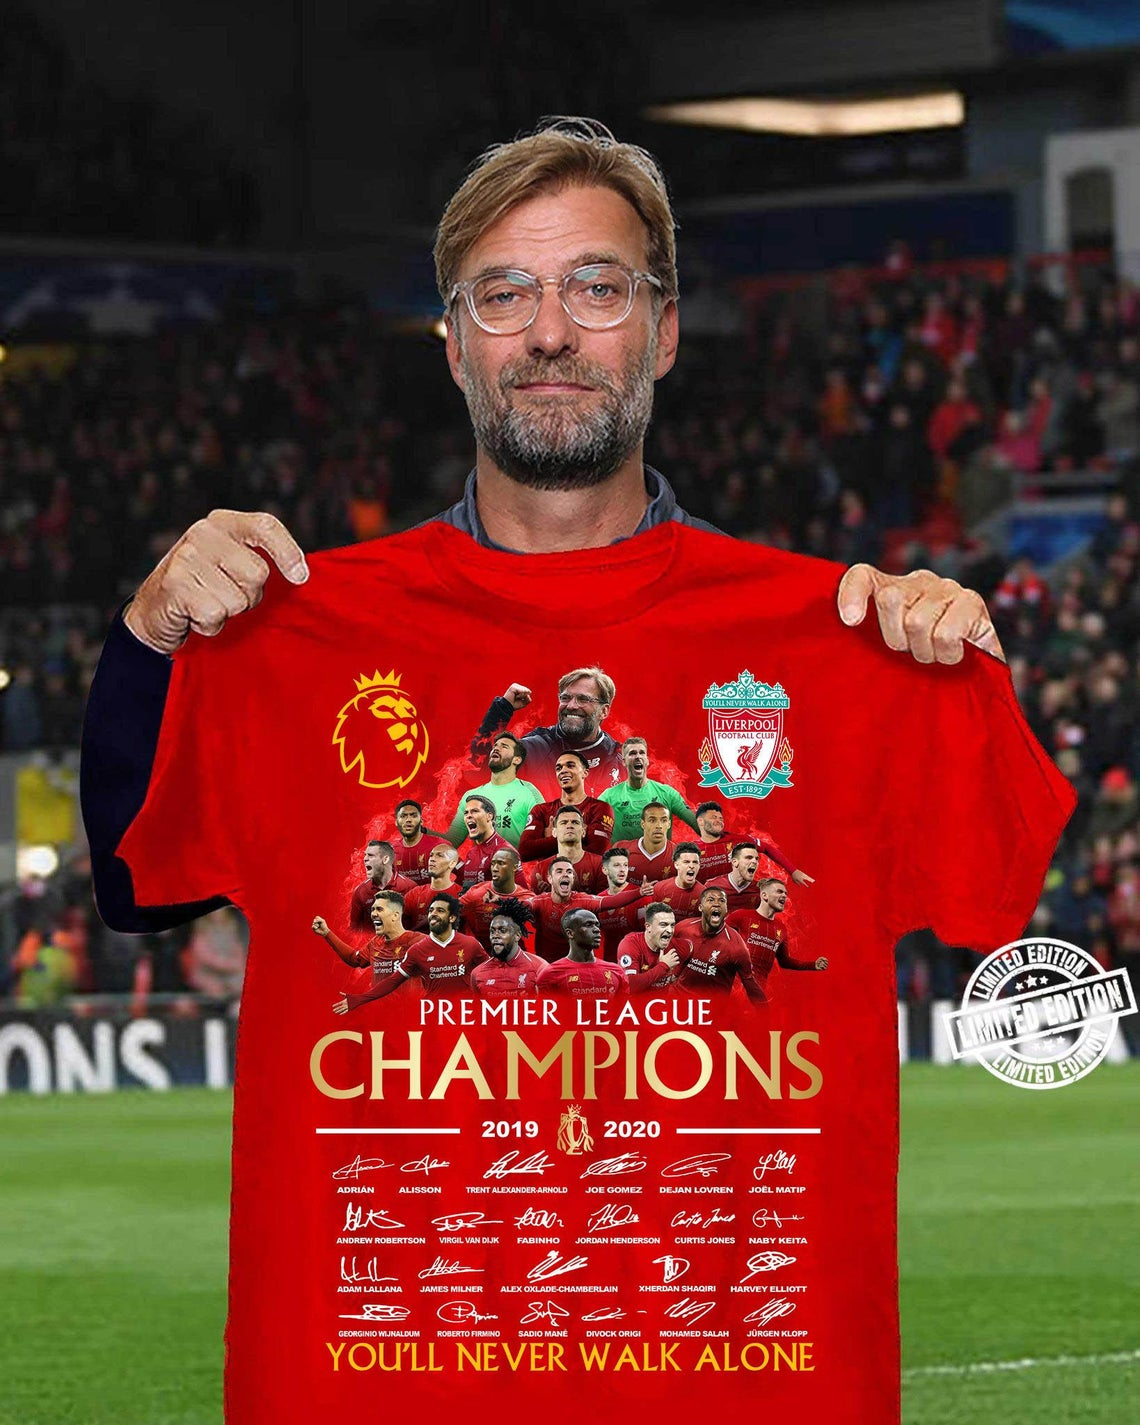 Liverpool Premier League Champions 2020 White Red UK - Liverpool FC Funny Fashion T-Shirt